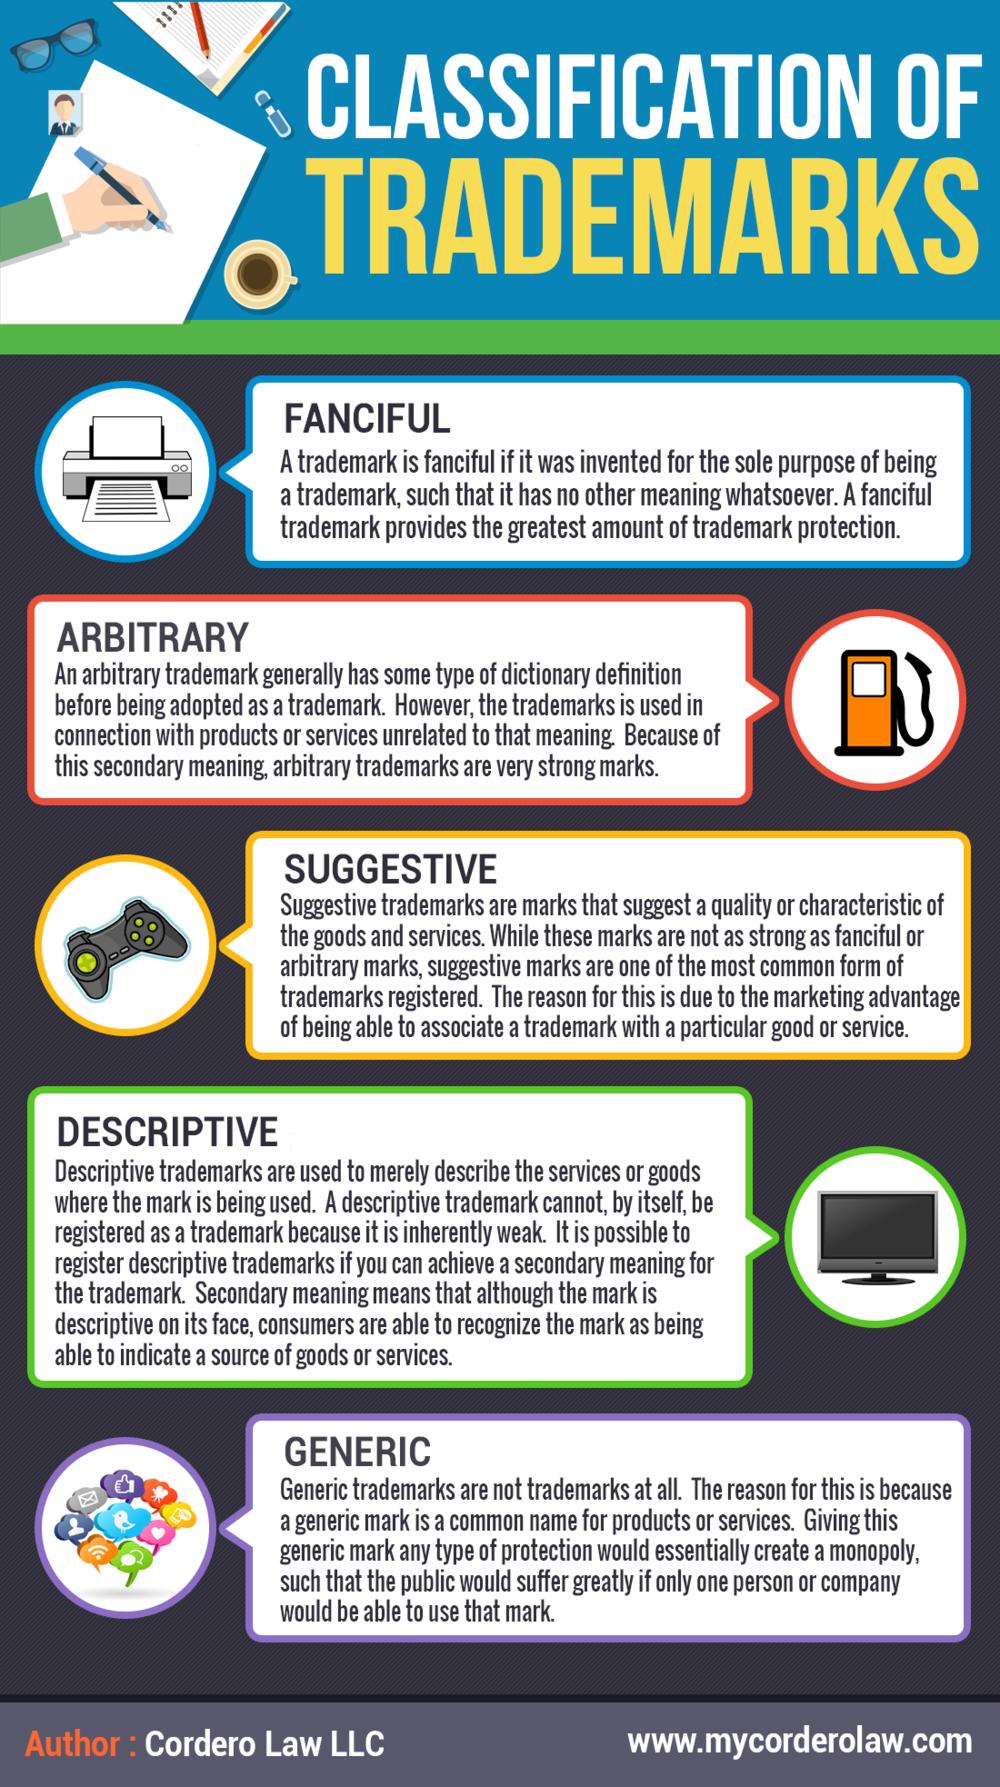 Trademarks are a form of intellectual property. A trademark is used to identify and distinguish the source of the goods or services. There are many categories to describe trademarks. In this infographic by Cordero Law LLC, they are identified.